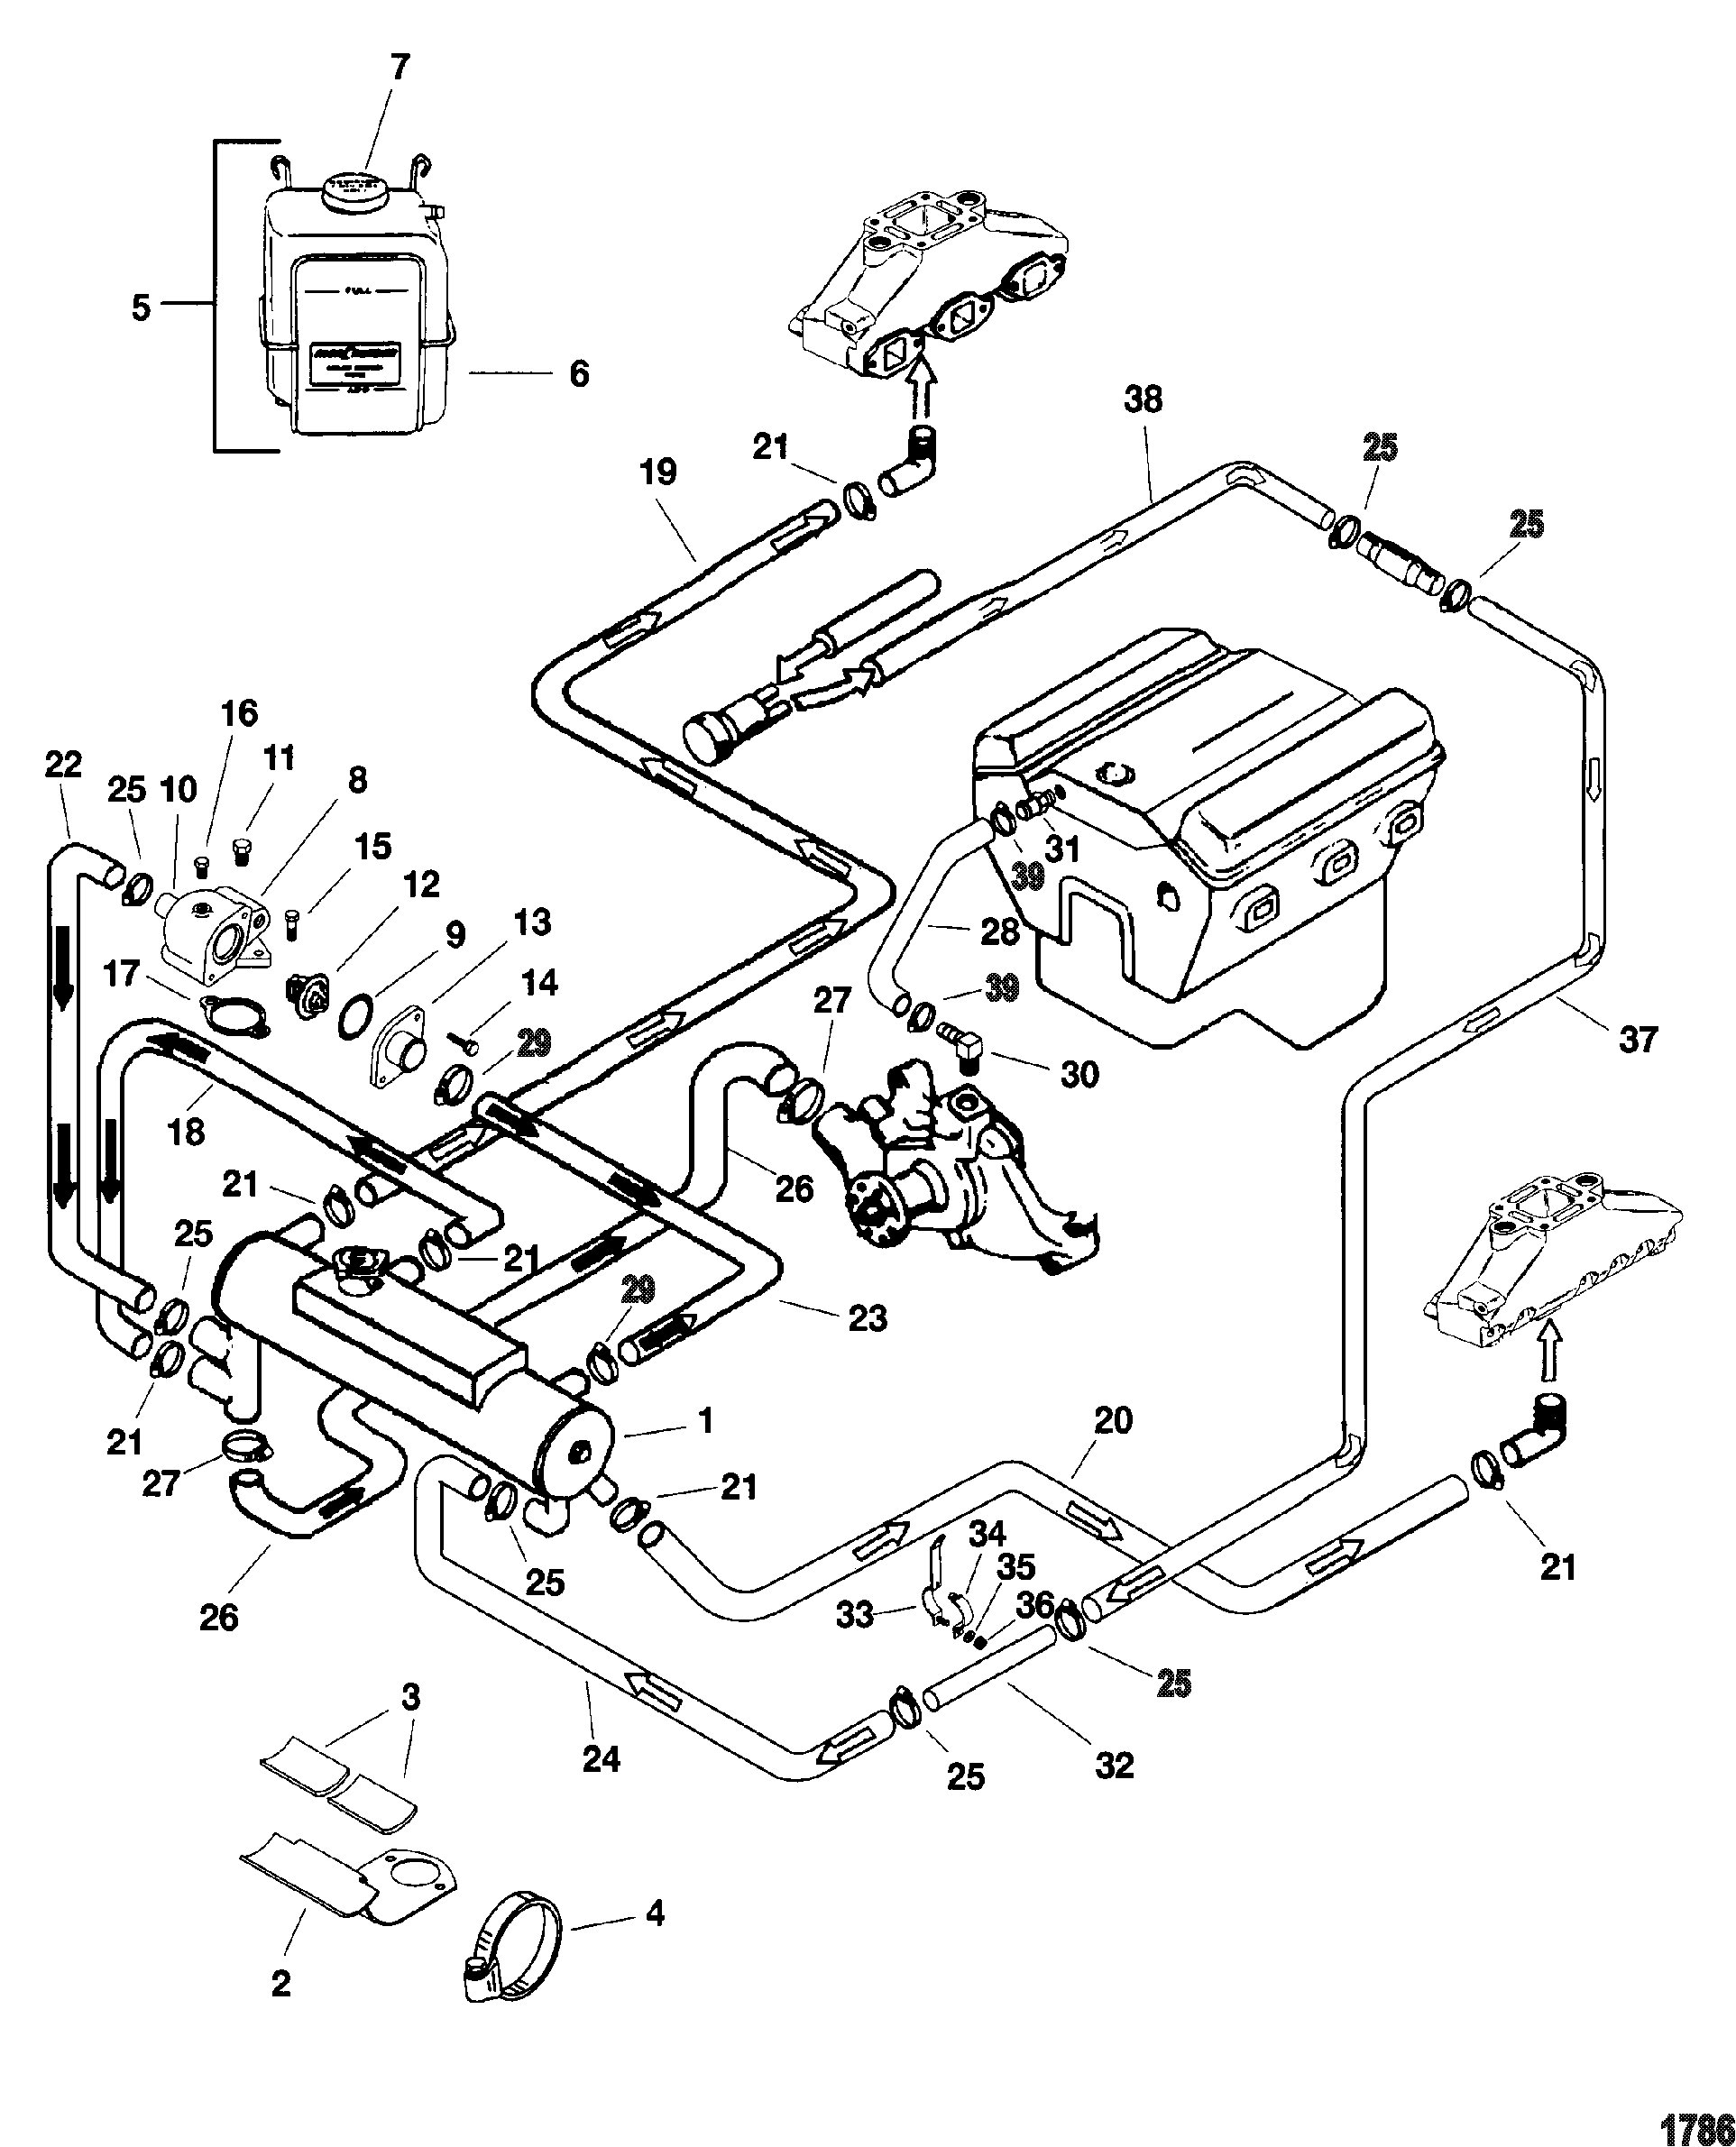 How To Adjust Handbrake On A 1995 Mazda Rx 7 as well P 0996b43f802e306a likewise P 0996b43f8037892d also Toyota 4runner Parts Diagram also Show product. on 2000 toyota camry parts accessories